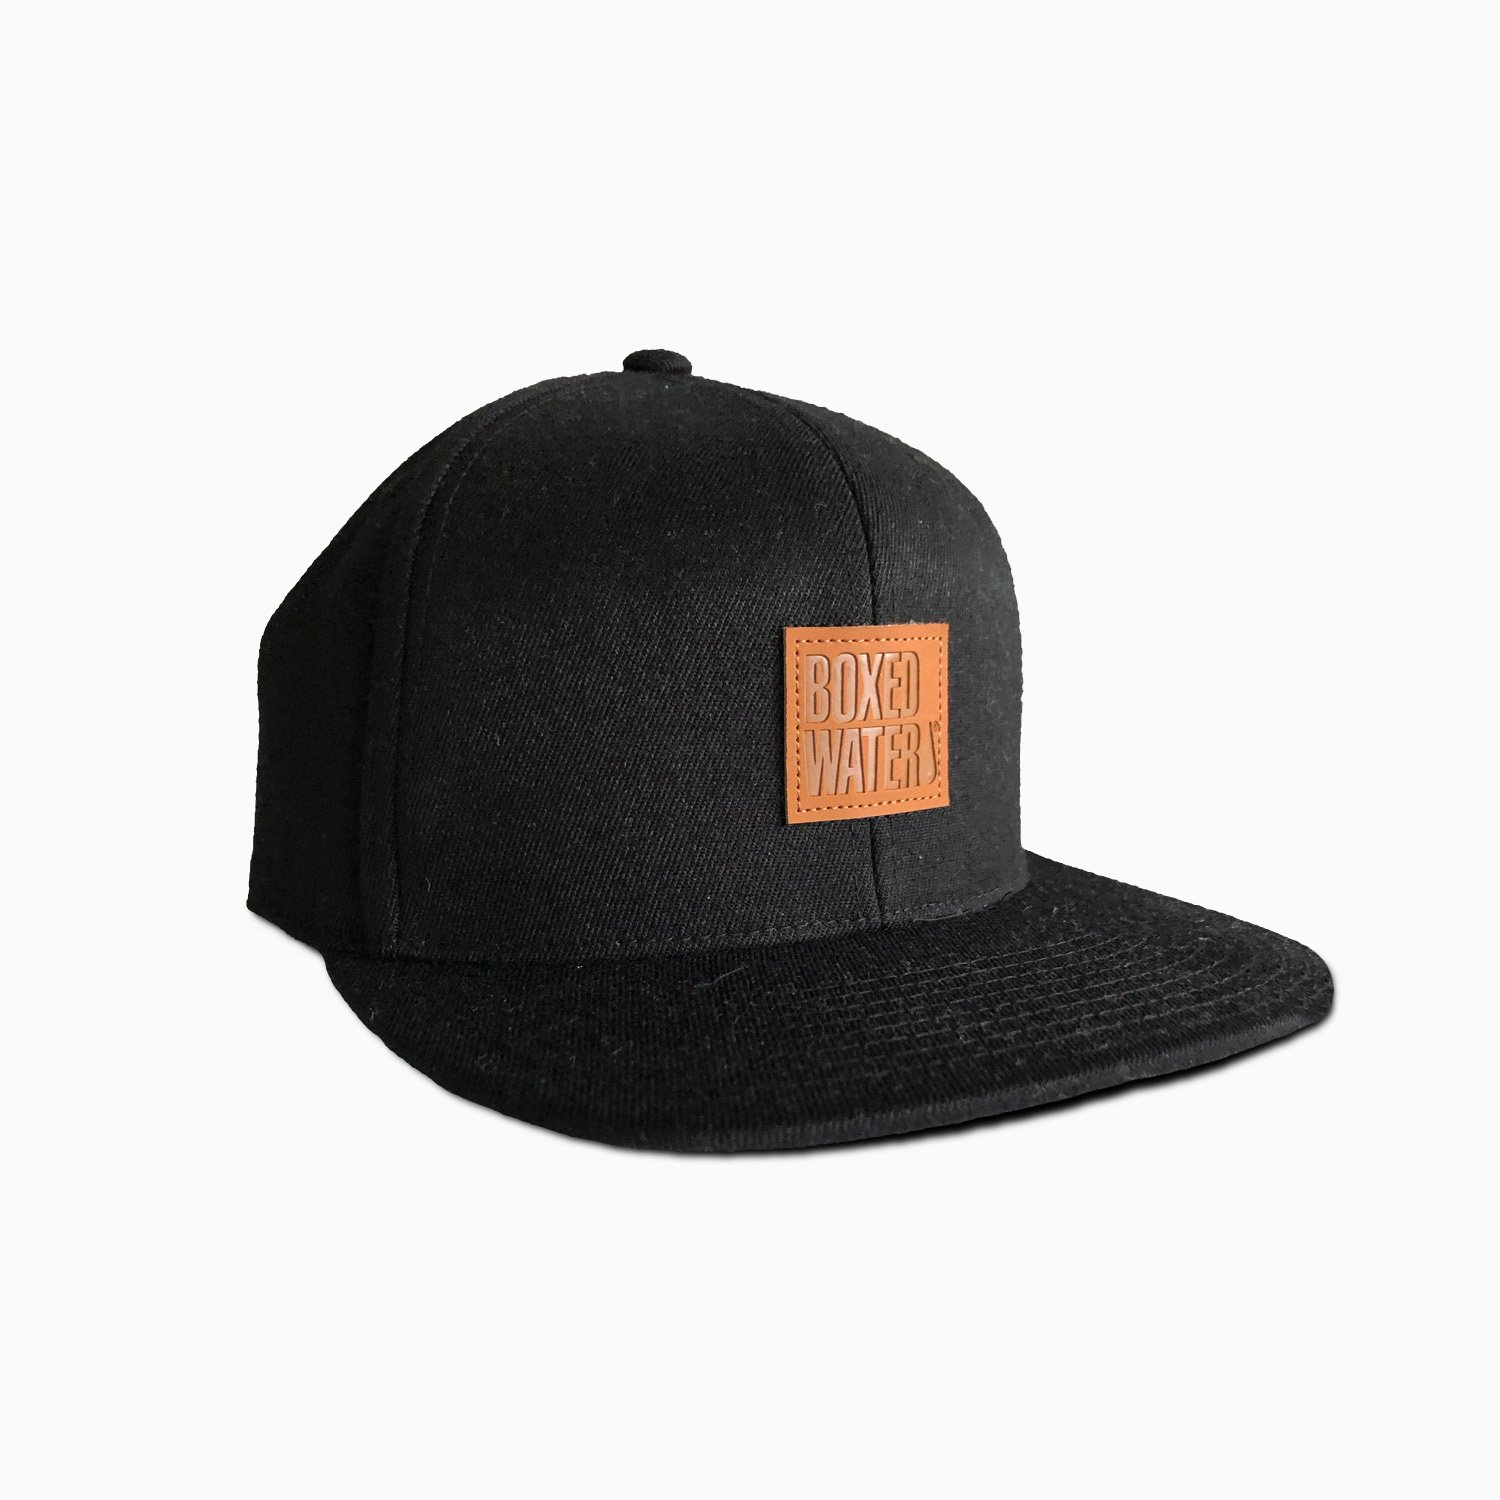 Boxed Water Leather Patch Hat